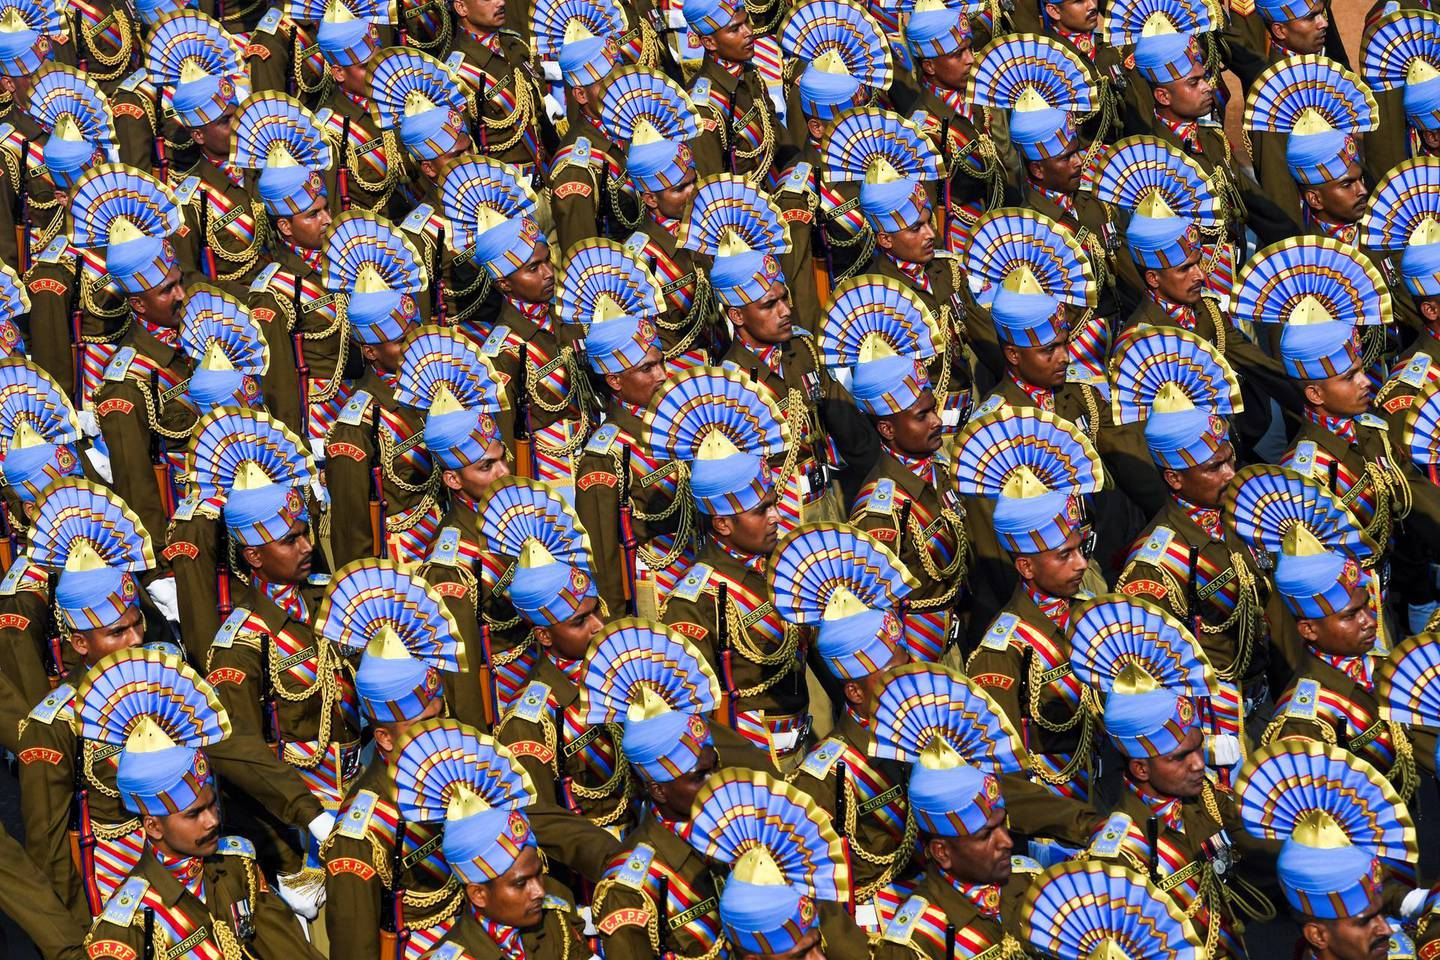 Soldiers march along Rajpath during the Republic Day parade in New Delhi on January 26, 2020. - Huge crowds gathered for India's Republic Day parade on January 26, with women taking centre-stage at the annual pomp-filled spectacle of military might featuring army tanks, horses and camels. (Photo by Prakash SINGH / AFP)